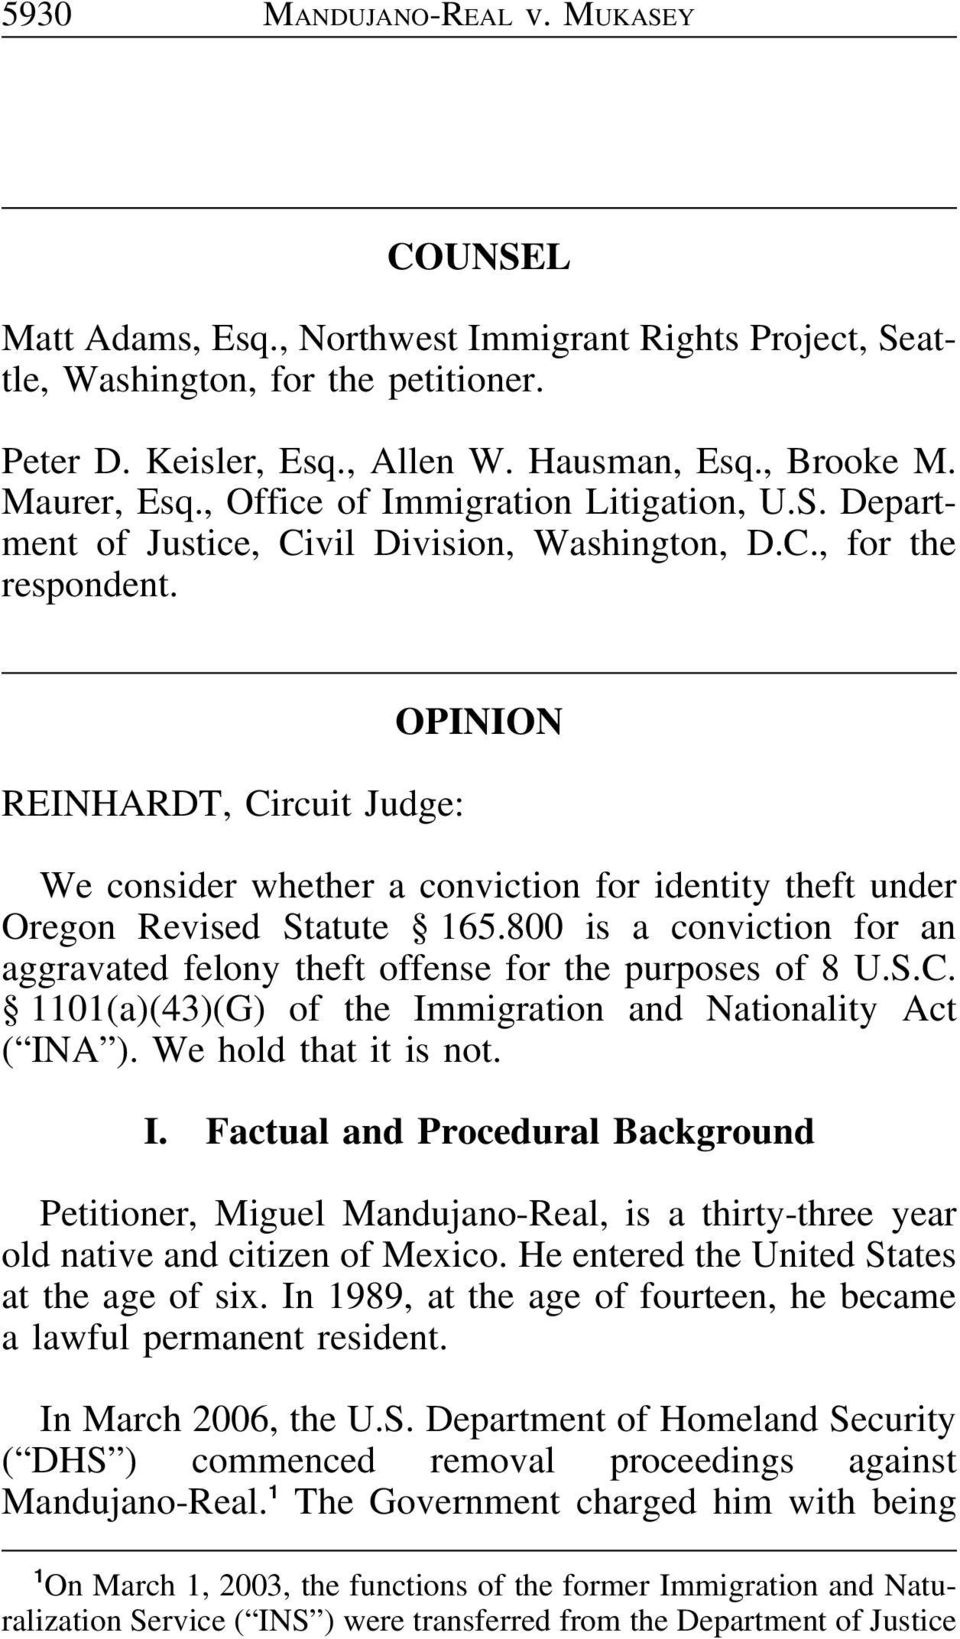 REINHARDT, Circuit Judge: OPINION We consider whether a conviction for identity theft under Oregon Revised Statute 165.